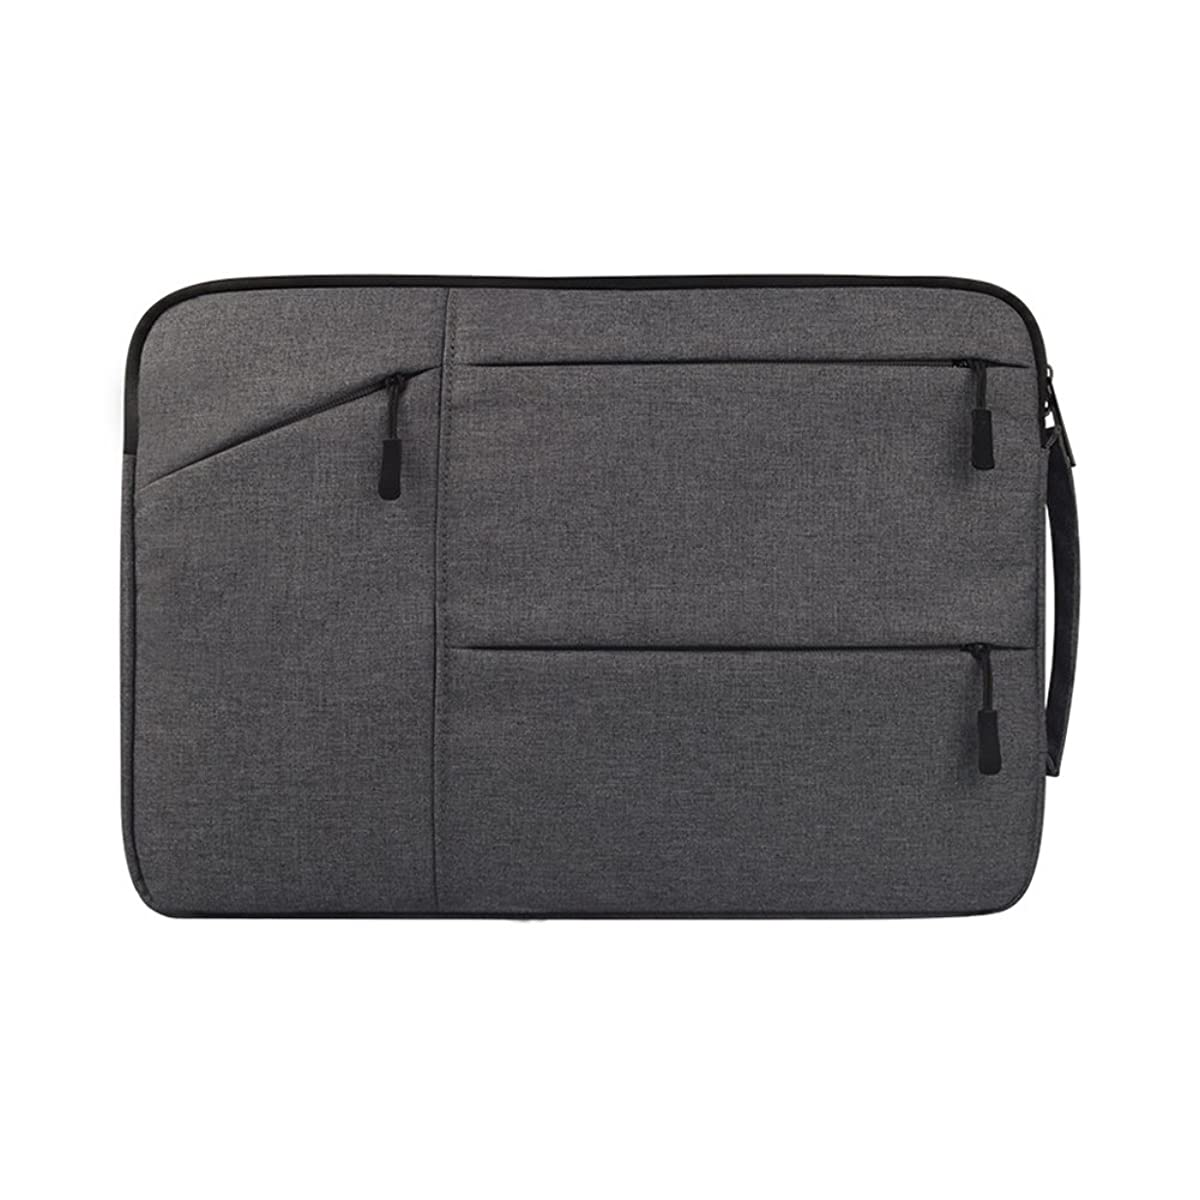 shiYsRL Ultra-Thin Laptop Tablet Sleeve Bag Case for Women Men,Portable Anti-Scratch Cover for Apple MacBook Grey 15.6Inch